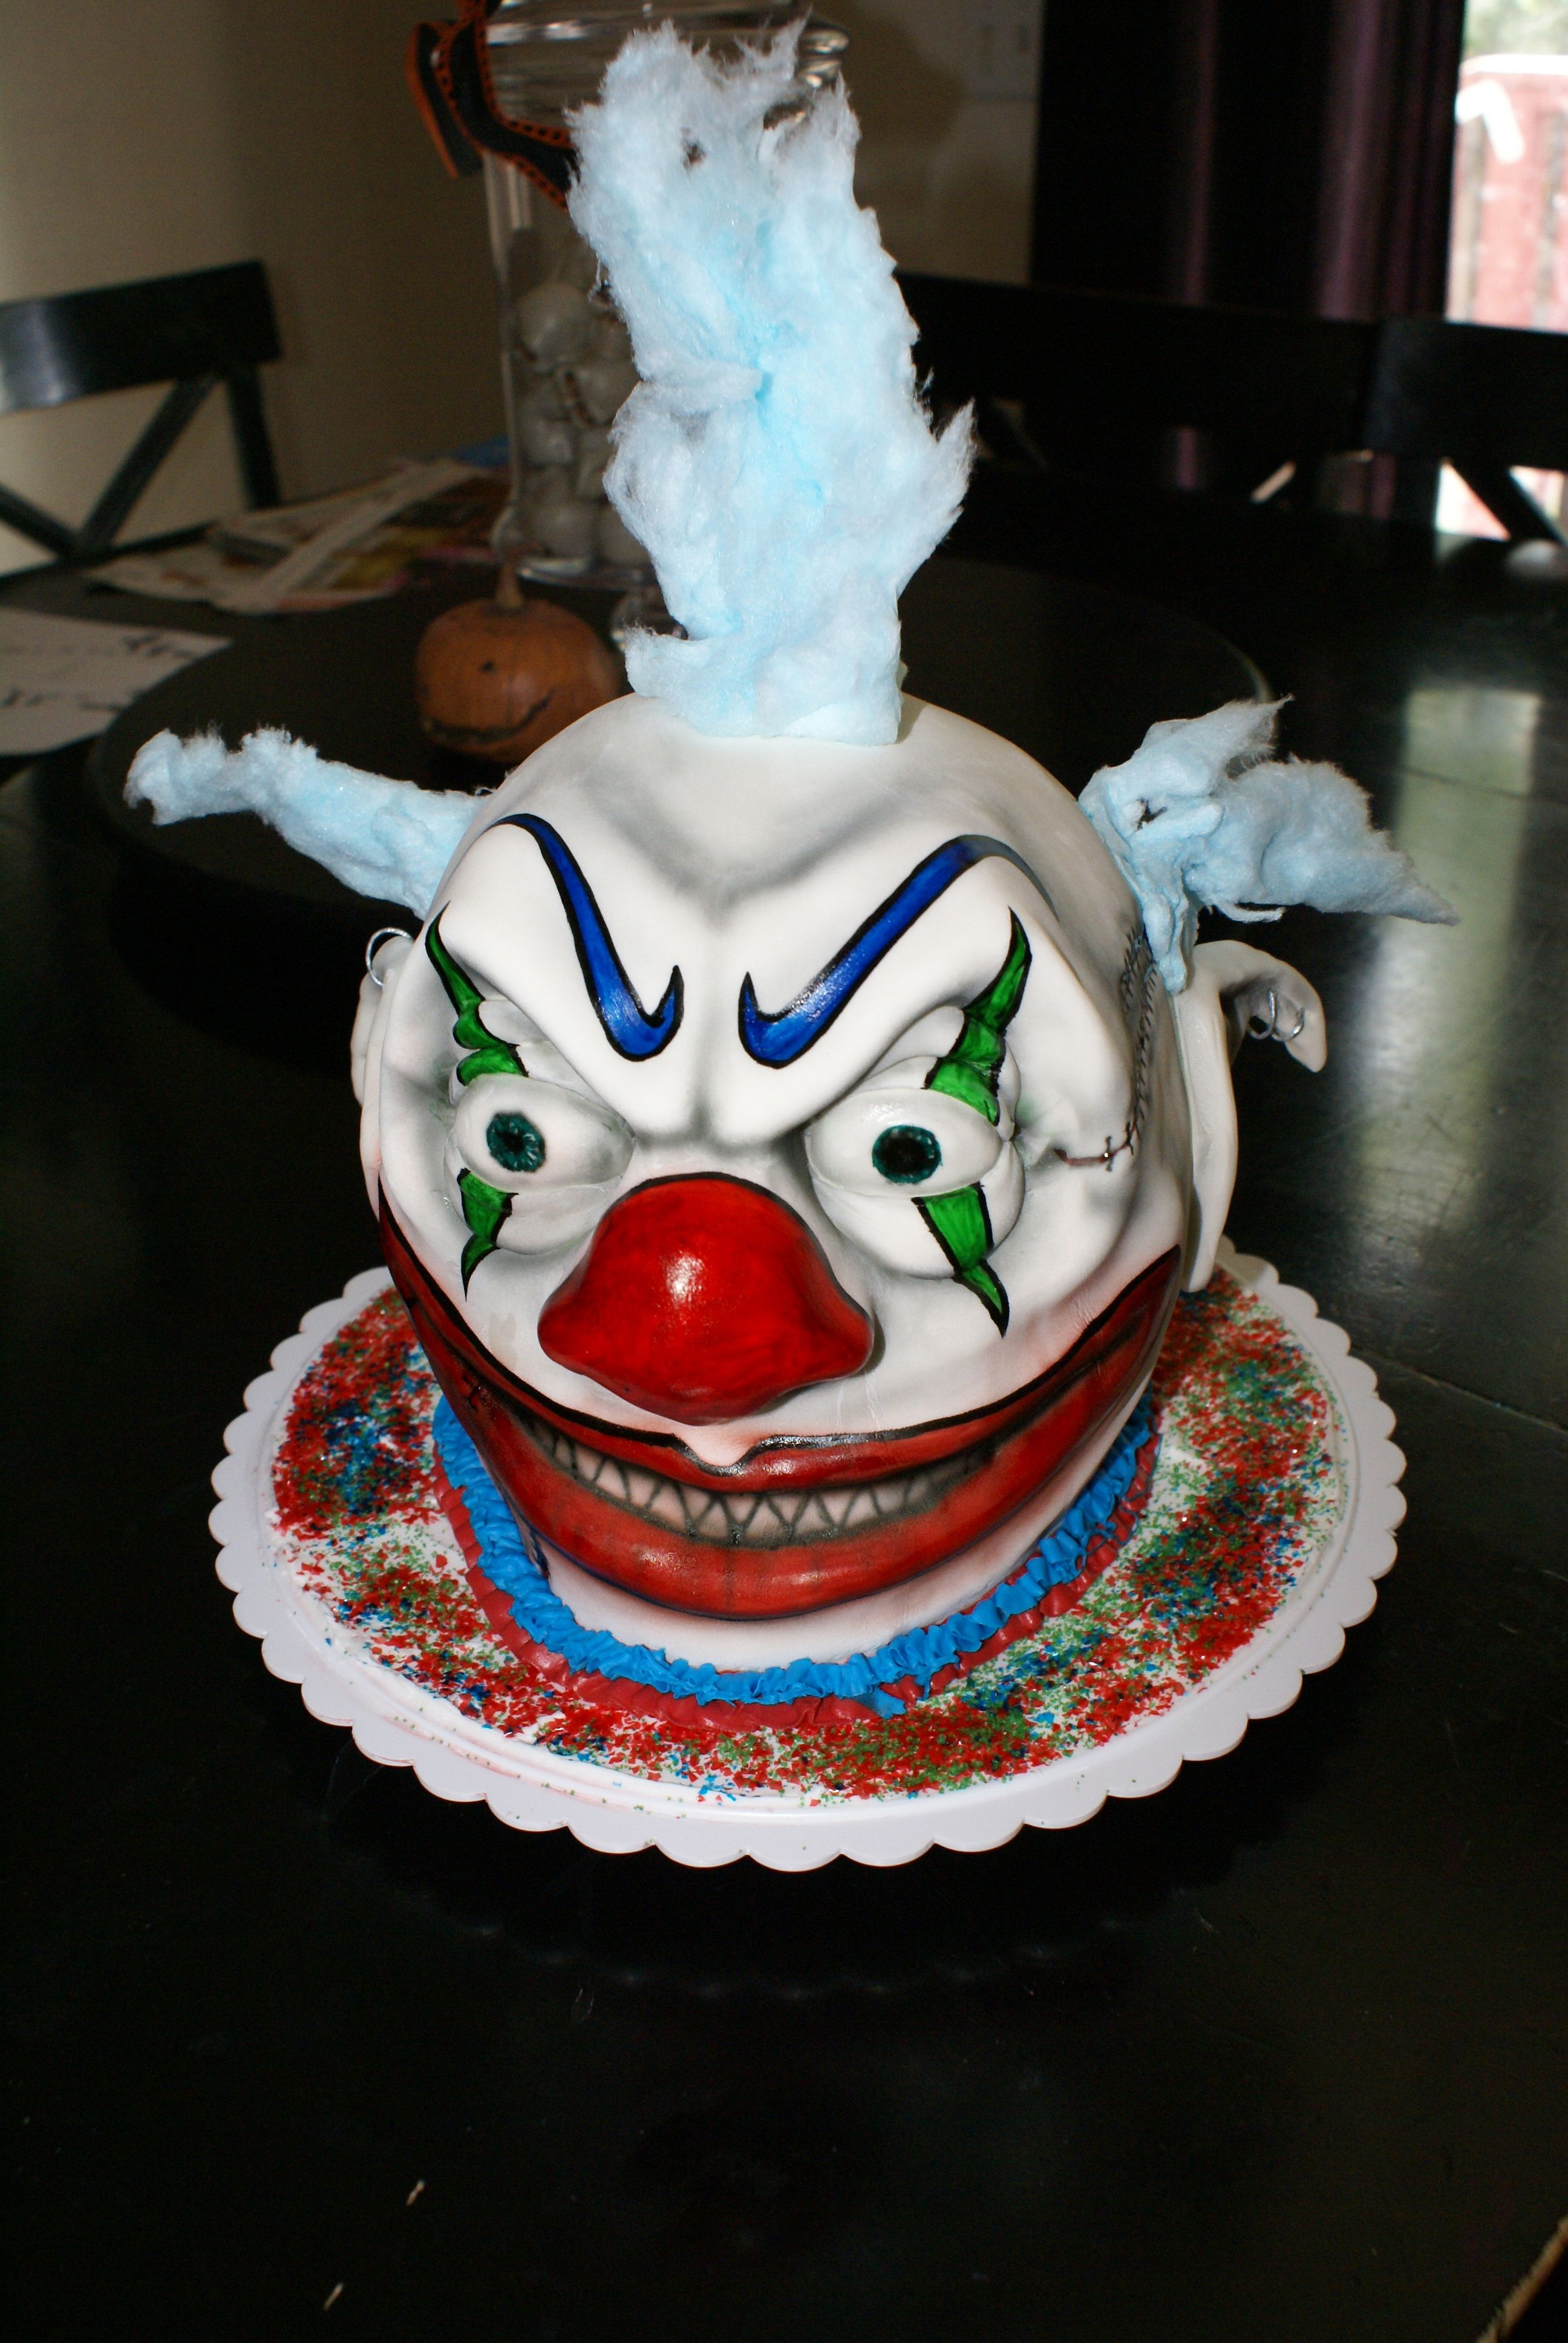 Fondant Pennywise Cake Decorating Kit In Reposteria Cake